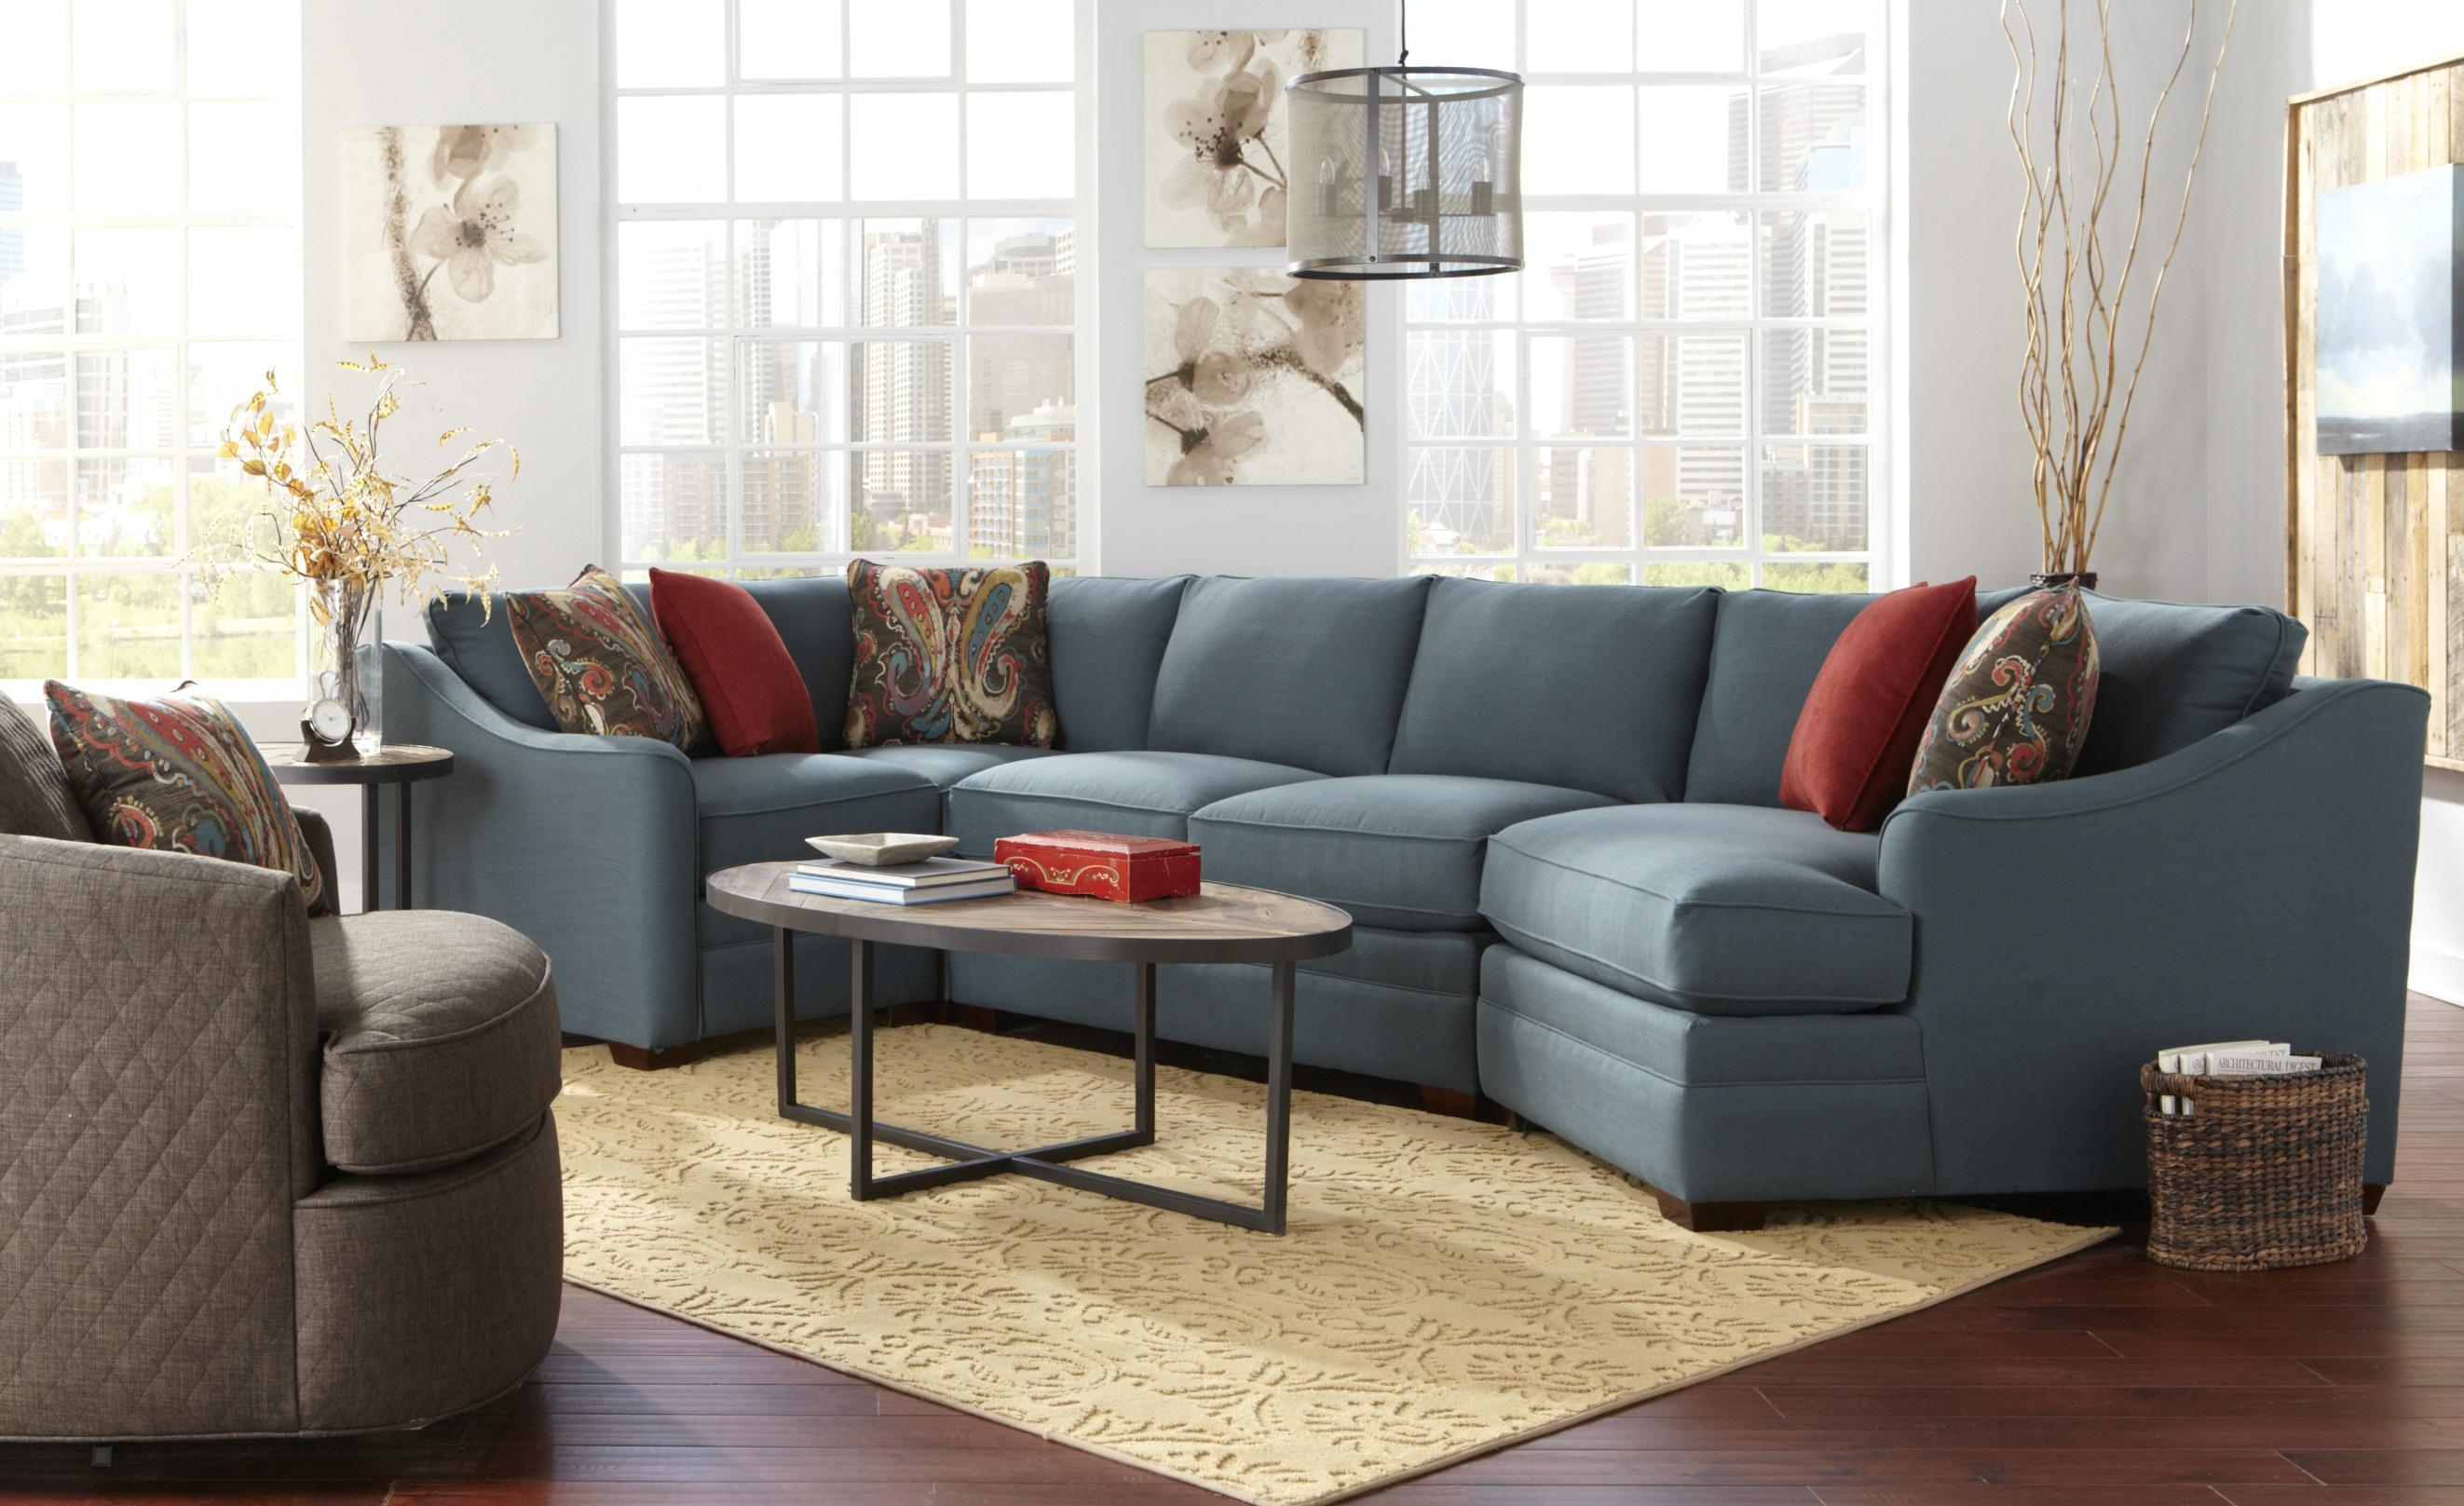 Sofas Center : Uniquectional Sofa With Cuddler Chaise Image Inside Sectional Sofa With Cuddler Chaise (View 5 of 20)